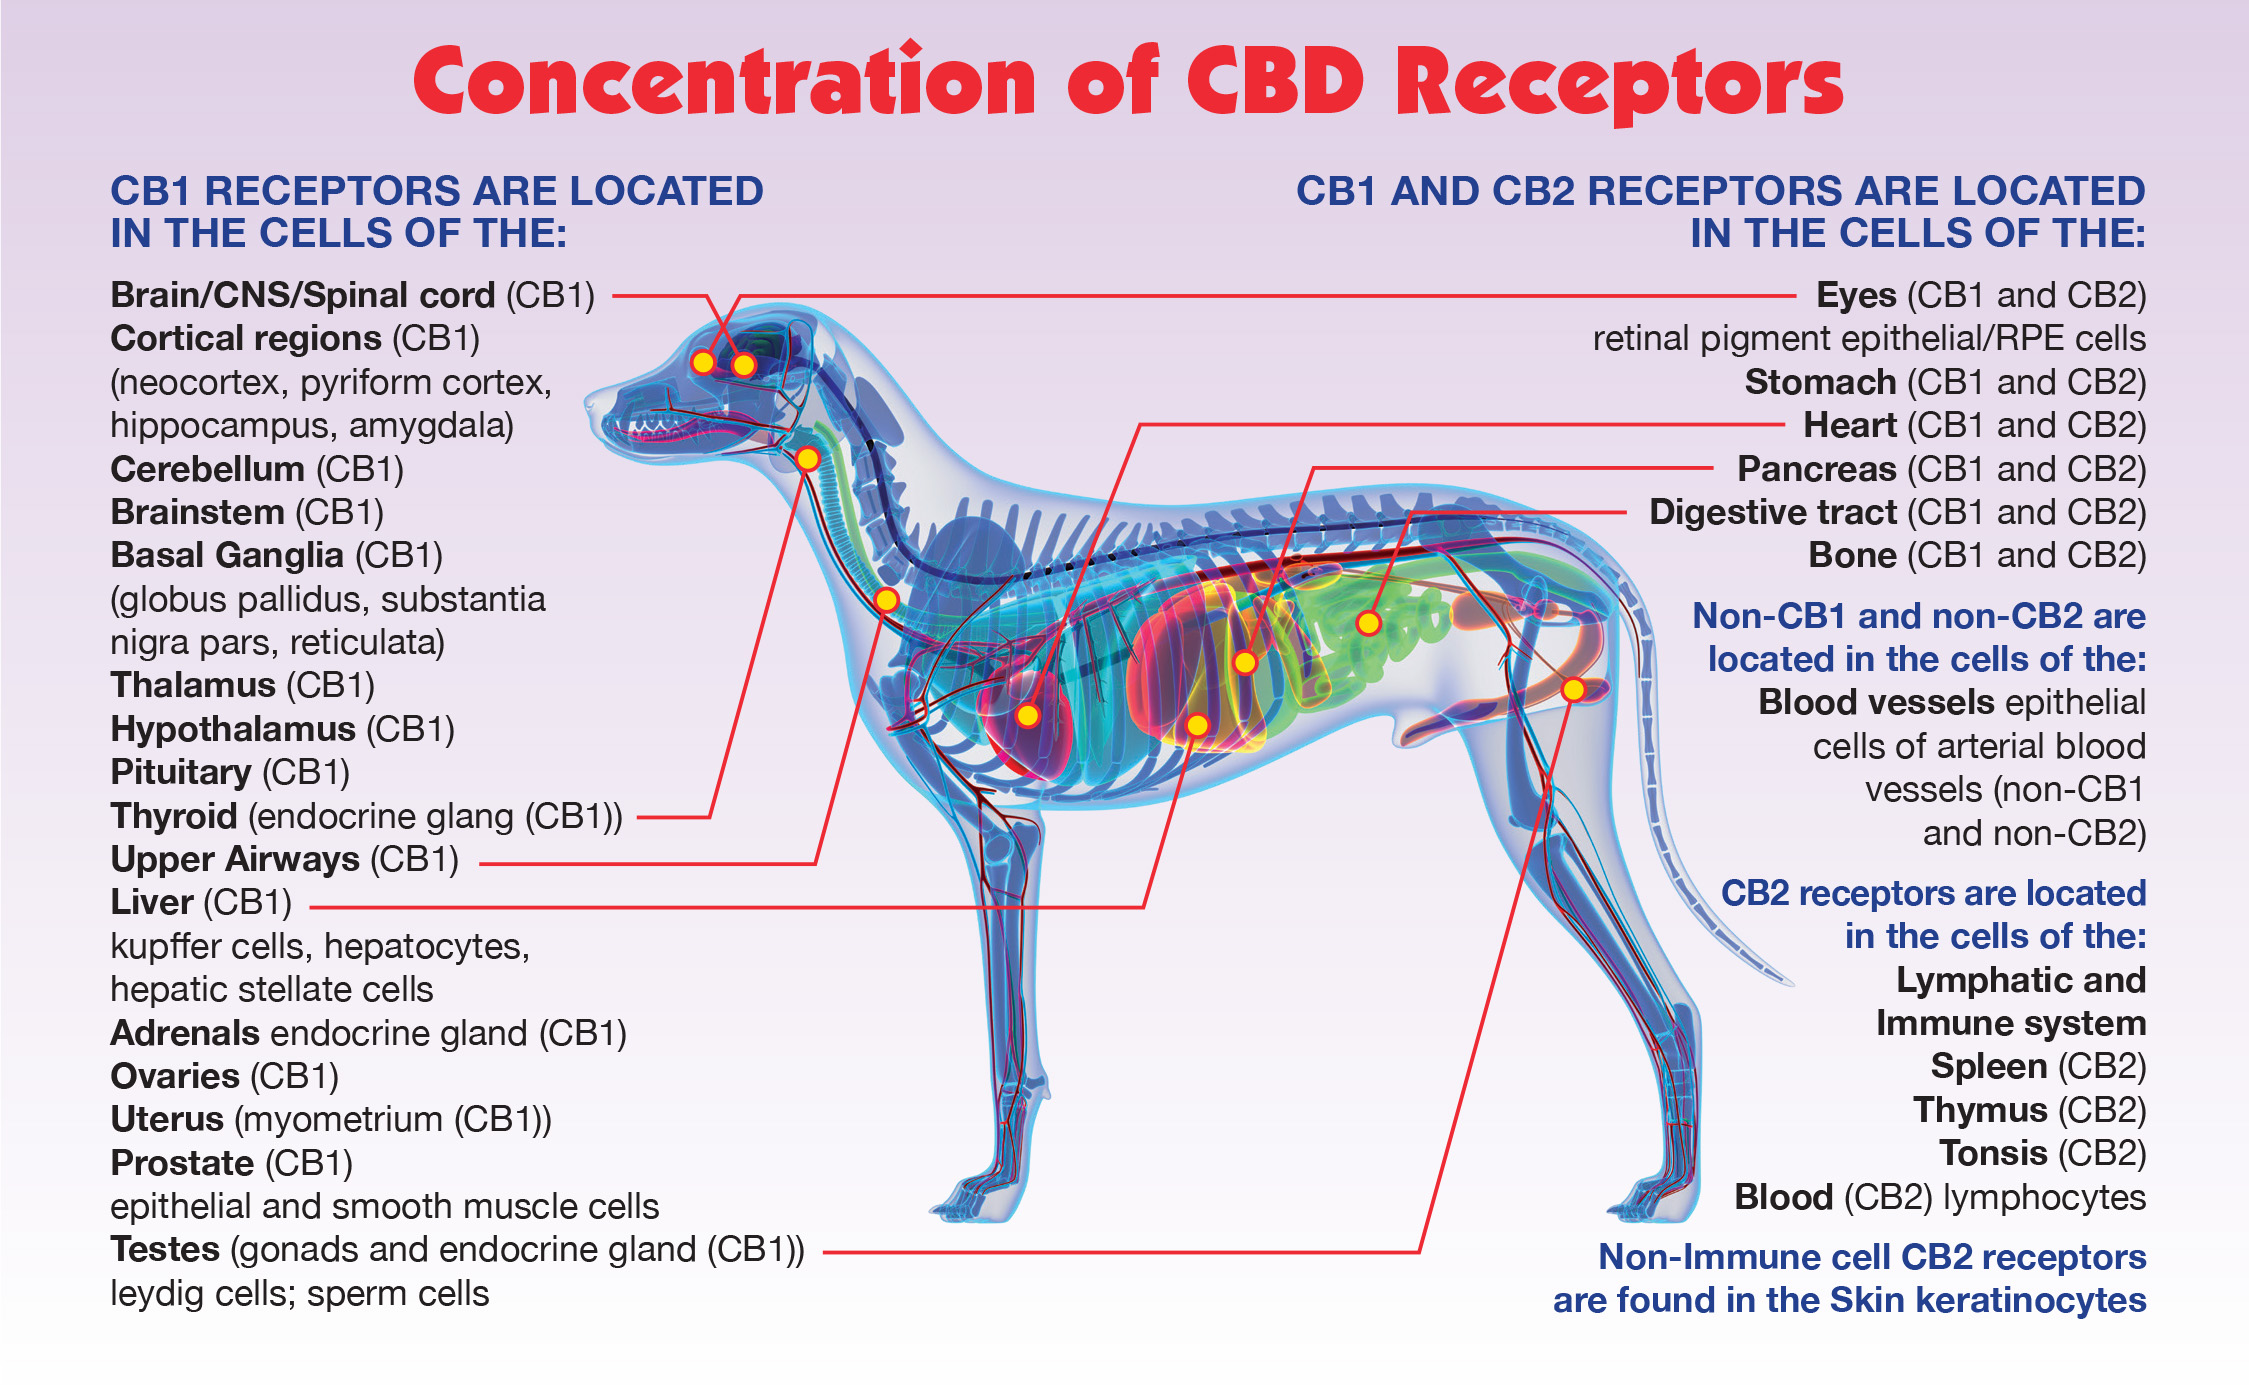 Concentration of CBD Receptors